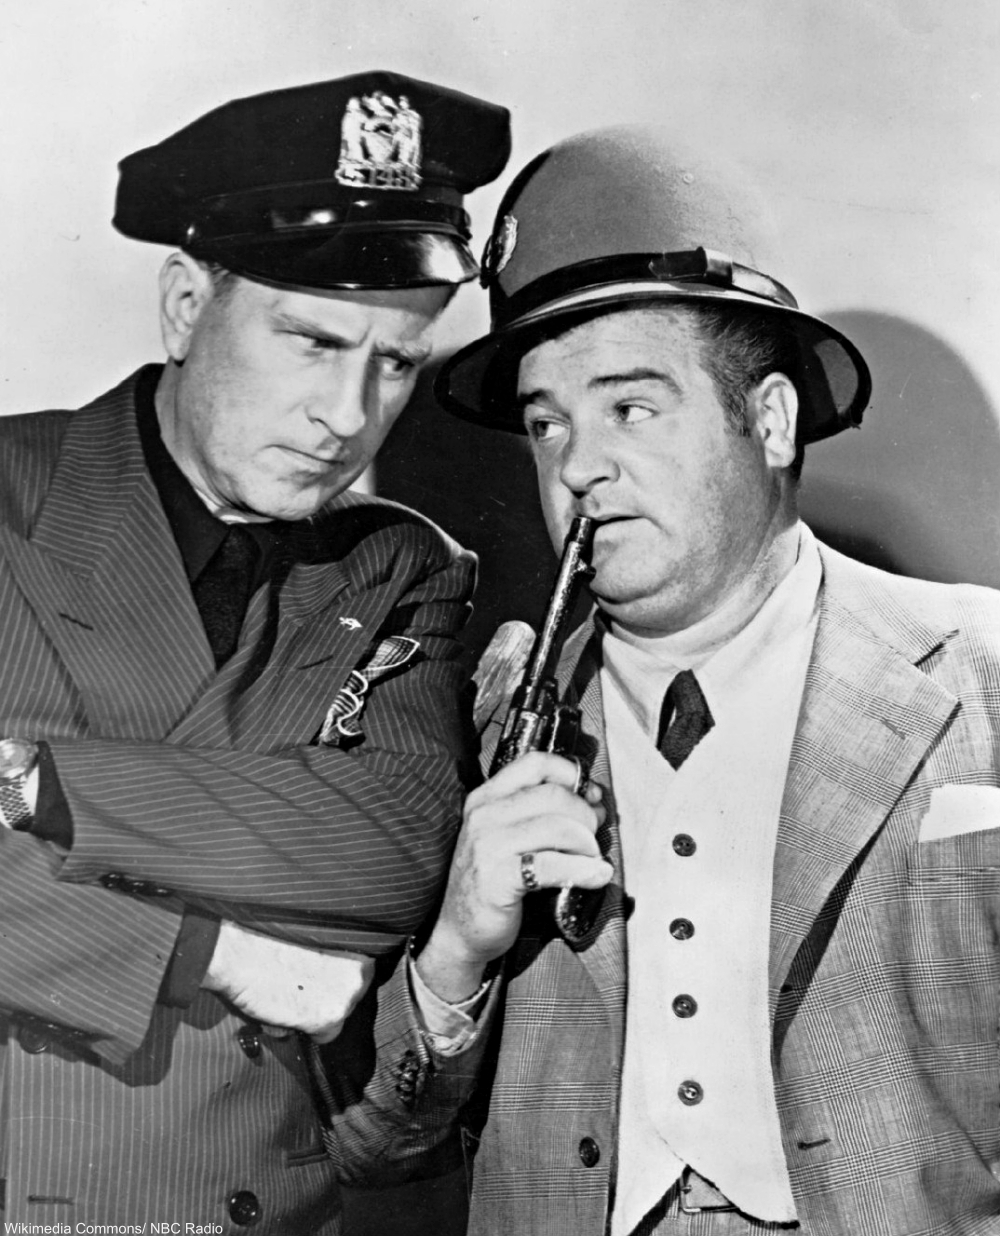 Abbott and Costello 1940s